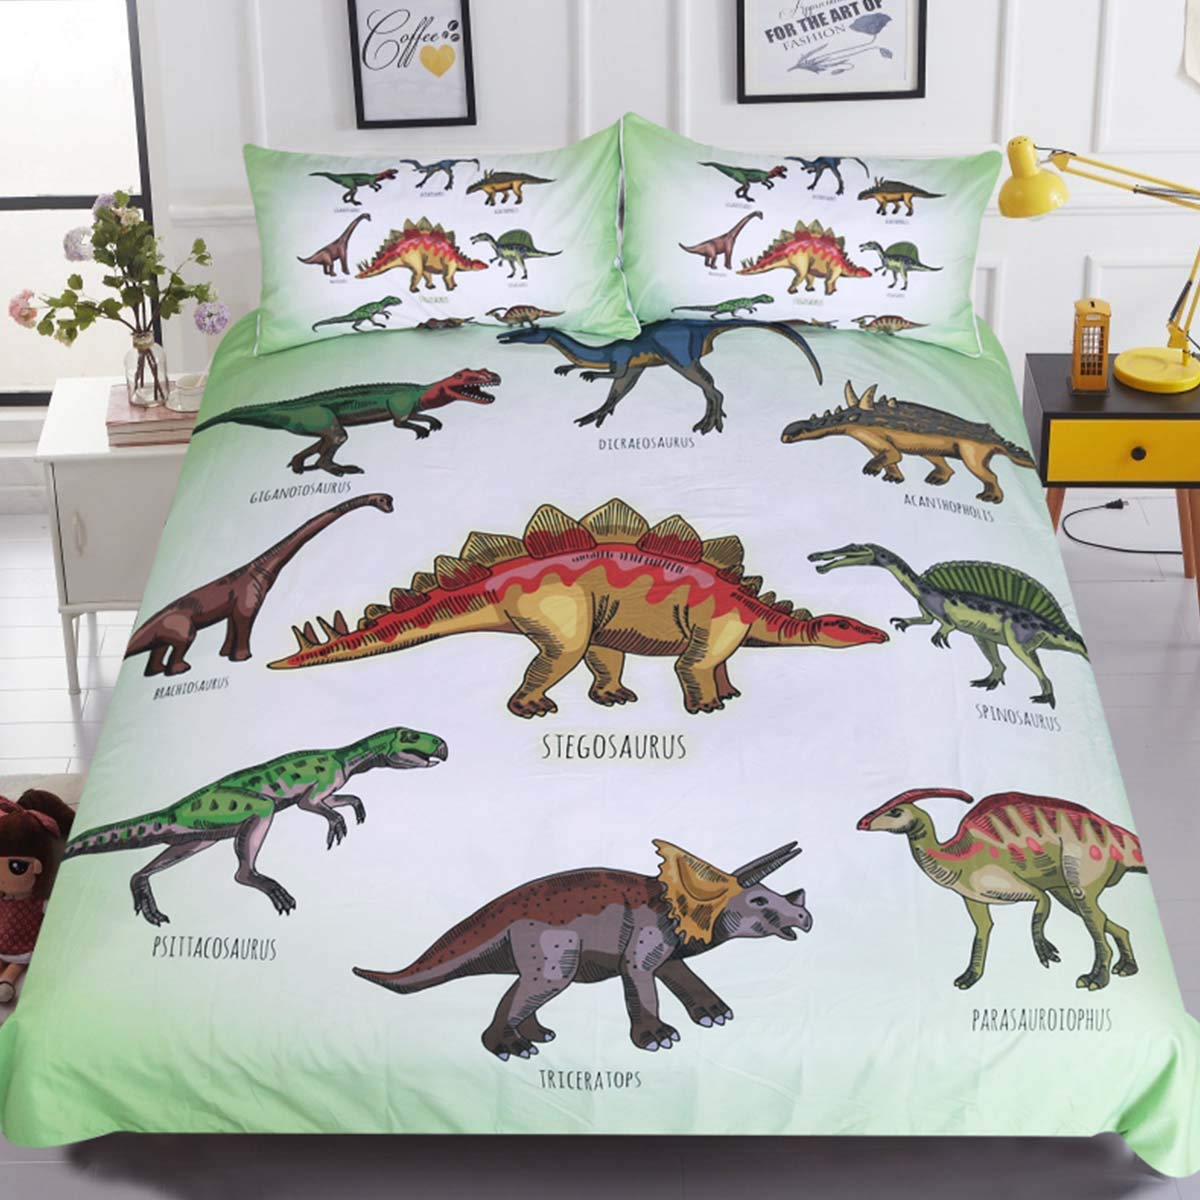 Sleepwish Cartoon Dinosaur Kids Bedding Full 3 Pieces Dinosaurs Bed Set for Boys Bedroom Green White Animal Duvet Cover Set Dino Bed Spread